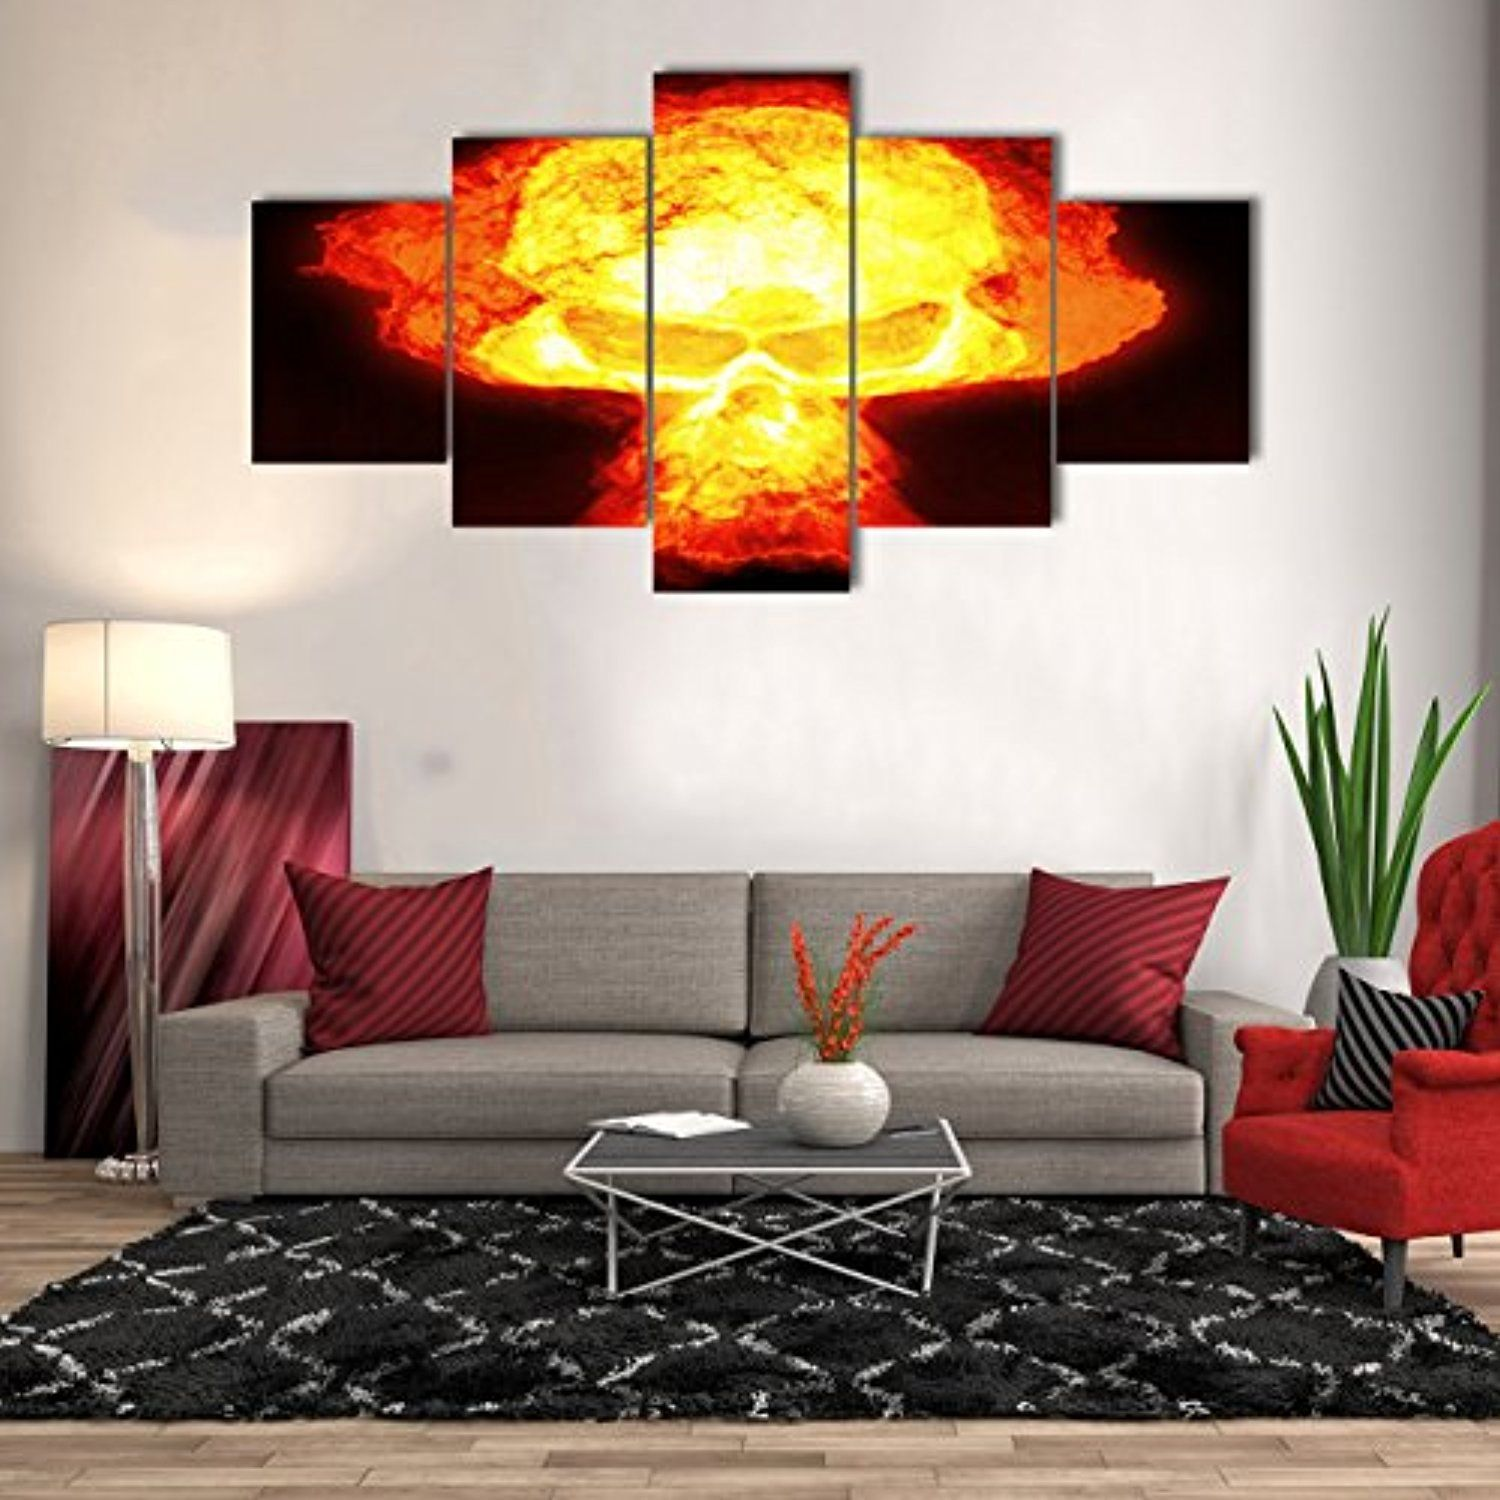 48++ Large wall art for living room amazon ideas